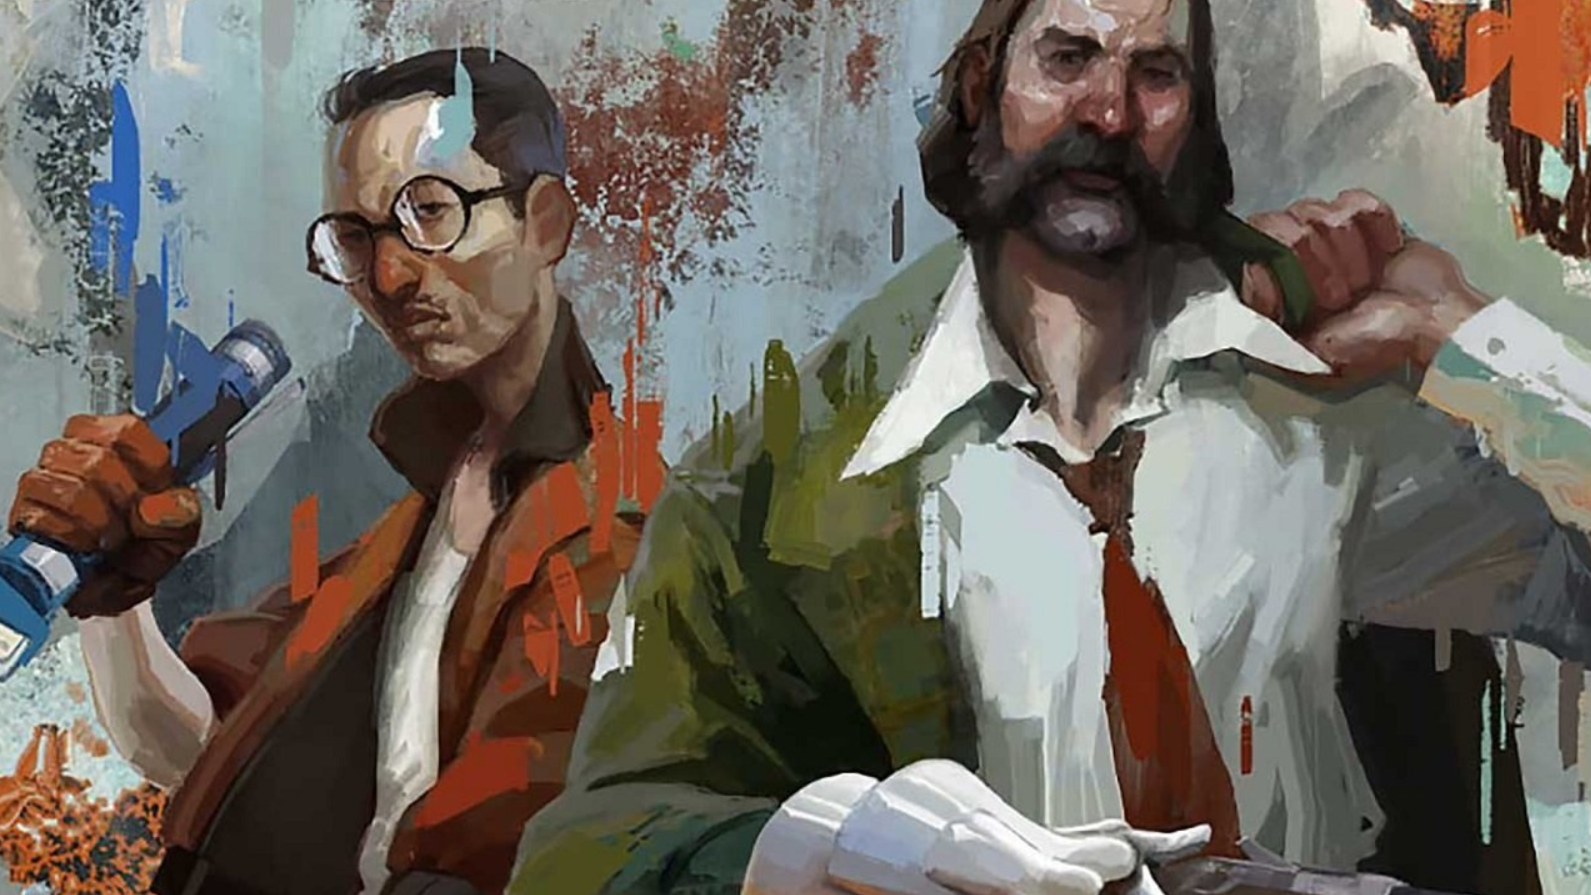 disco-elysium-update-1-002-000-1-02-fixes-major-issues-and-bugs-with-the-game-on-ps5-and-ps4